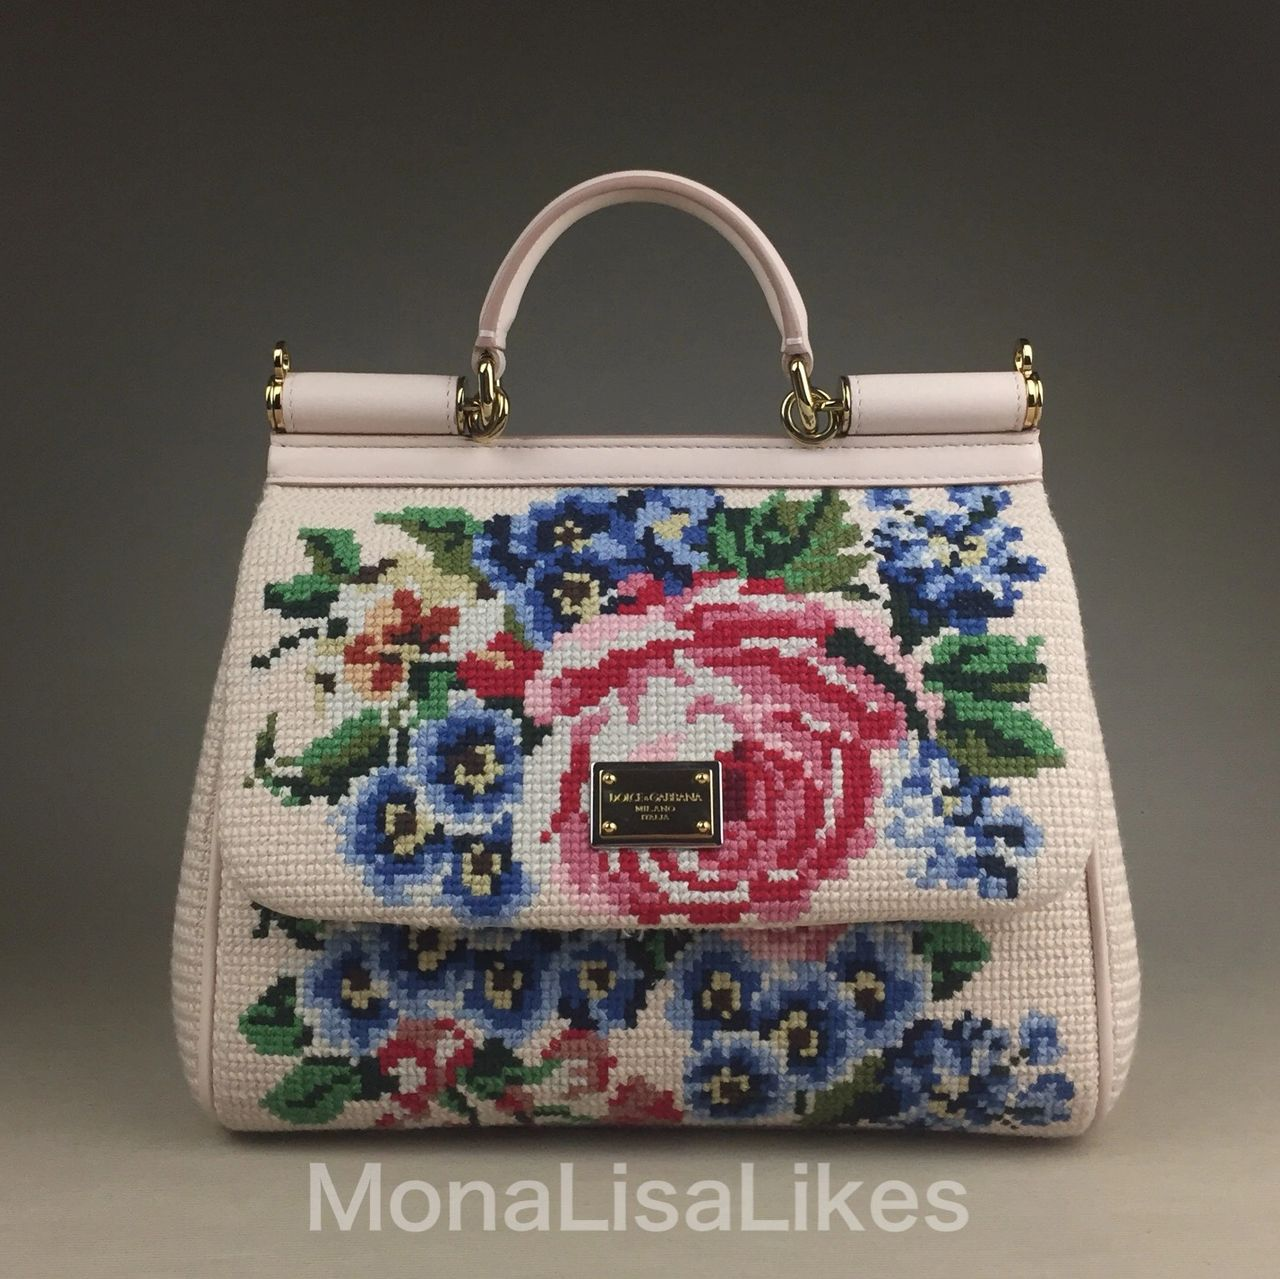 DOLCE & GABBANA Miss Sicily hand embroidered bag was retailed for over $4500 and still remains one of the most wanted by collectors